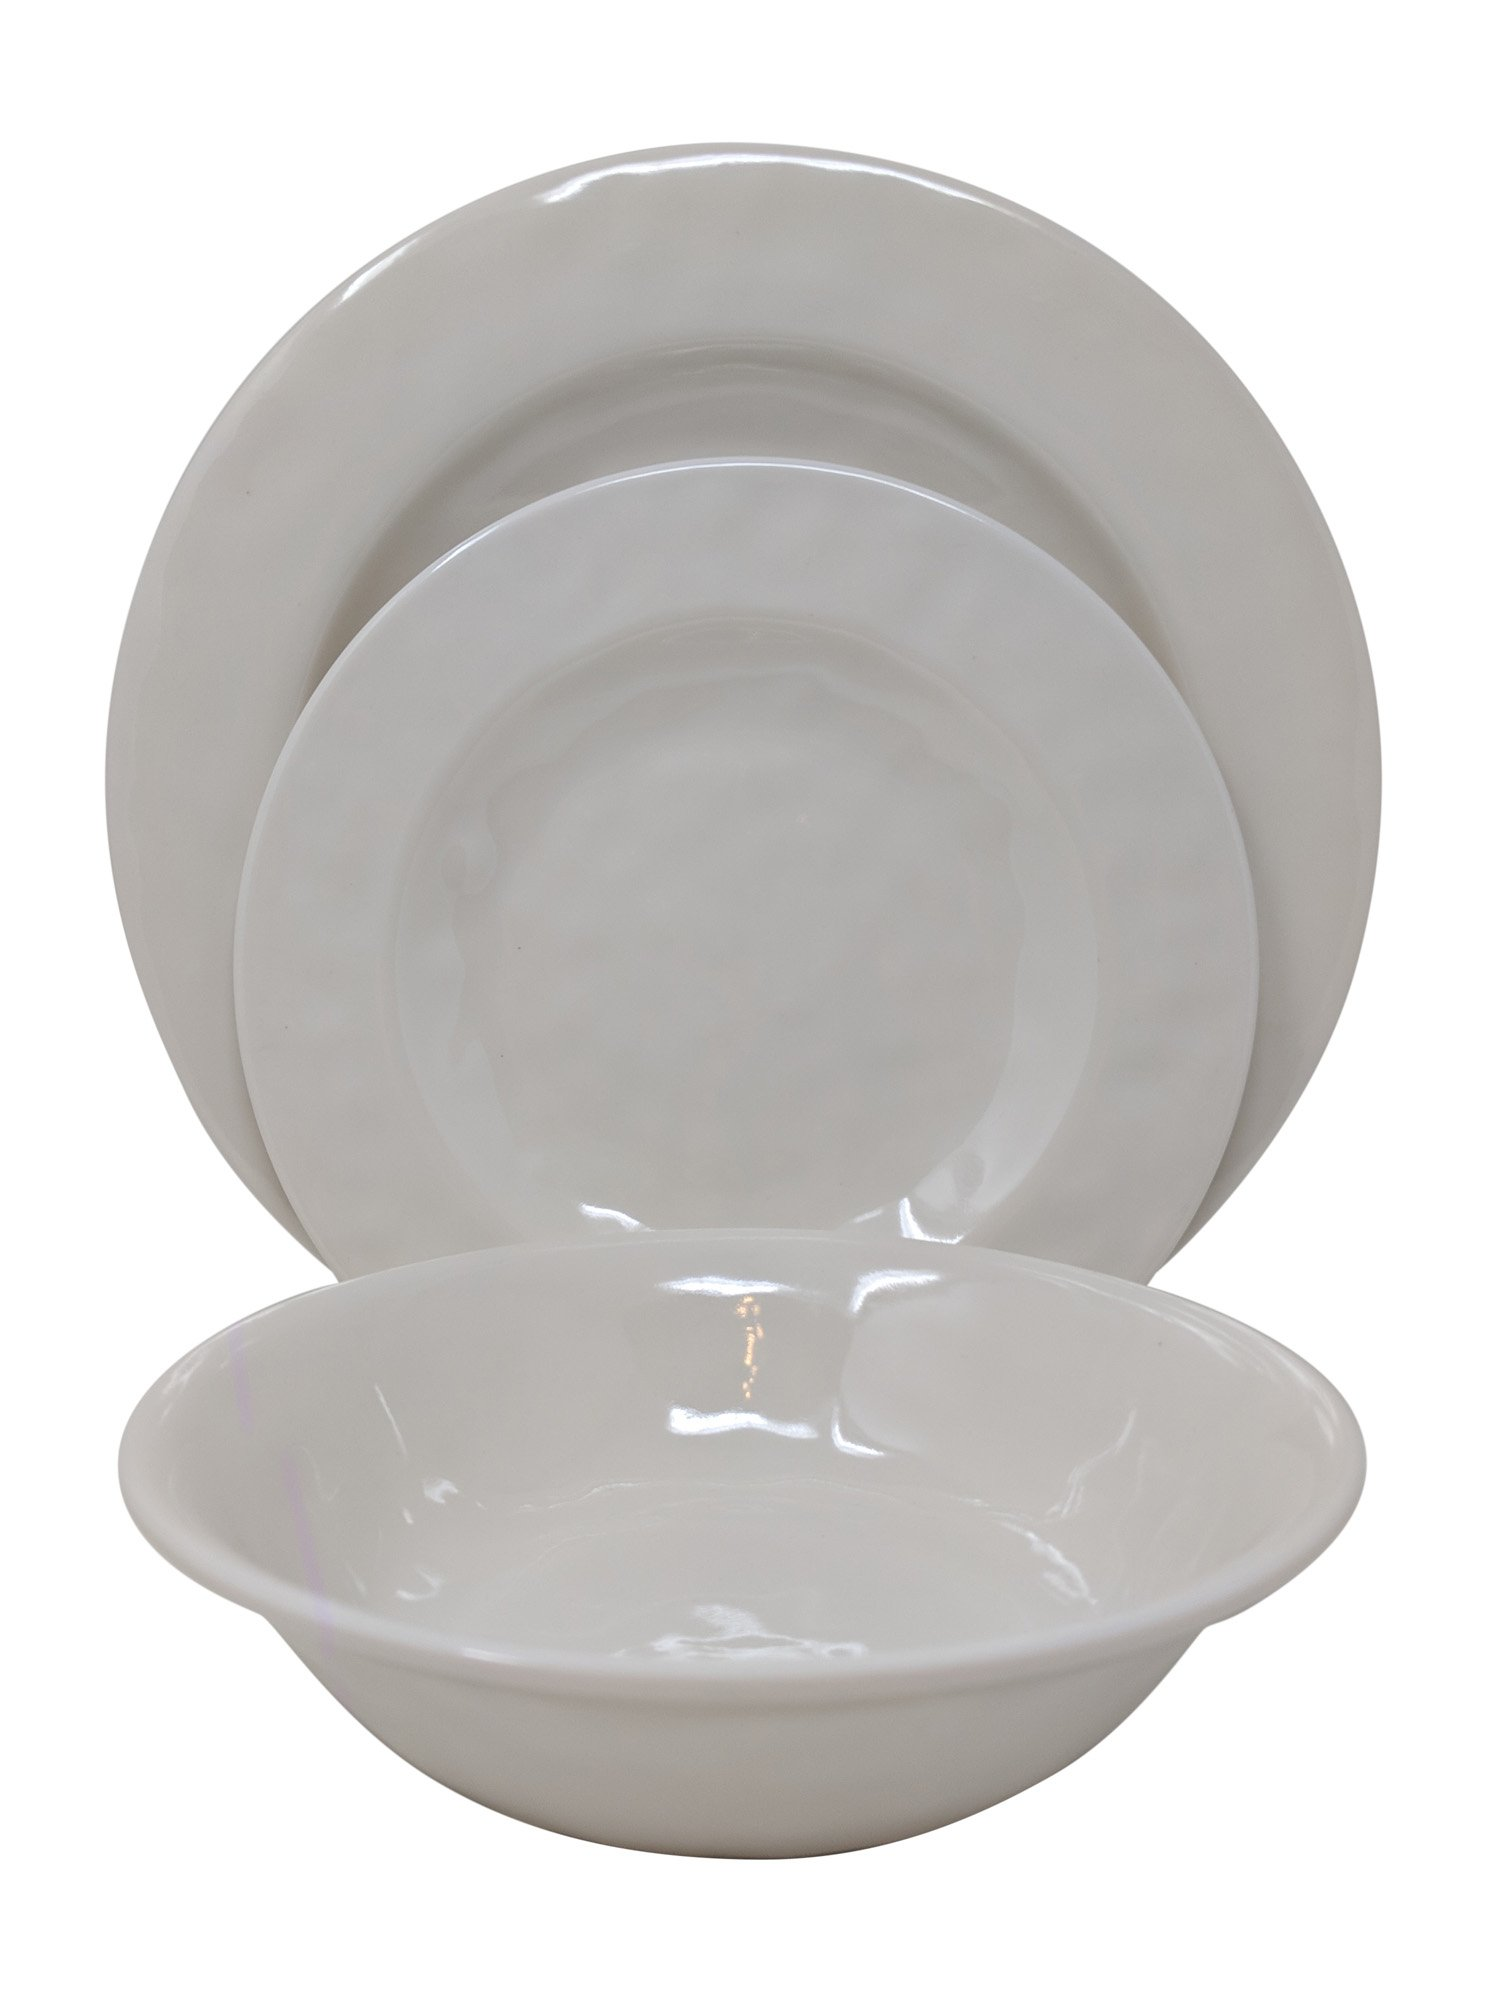 Gianna's Home 12 Piece Rustic Farmhouse Melamine Dinnerware Set, Service for 4 (Solid Ivory)